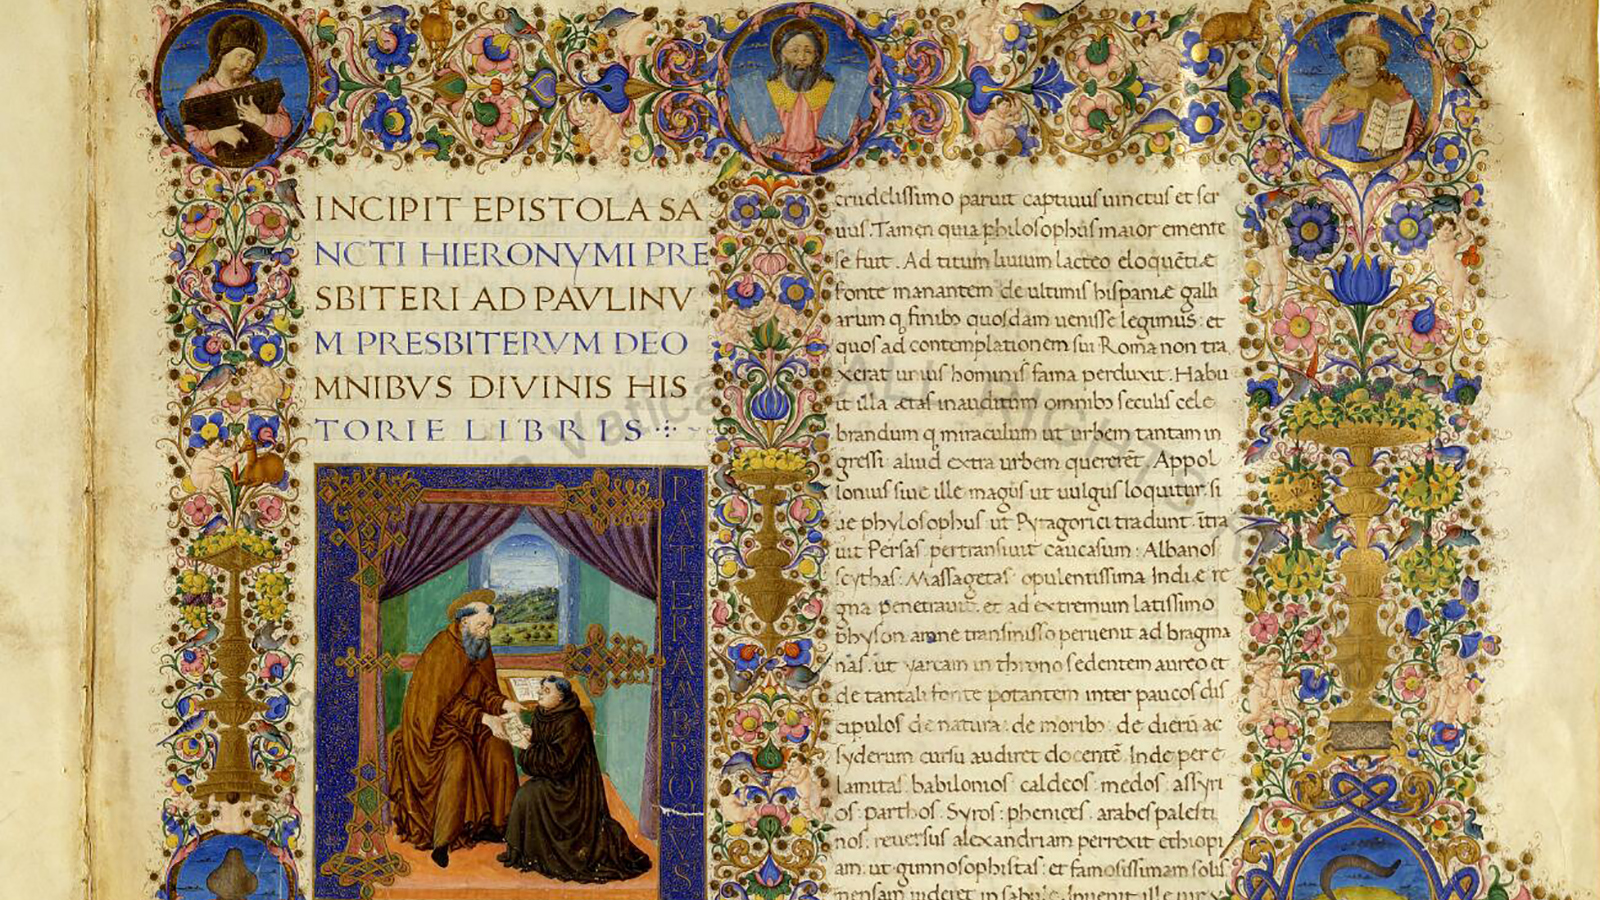 Detail of 2R from Manuscript - Urb.lat.1 in the Biblioteca Apostolica Vaticana collection